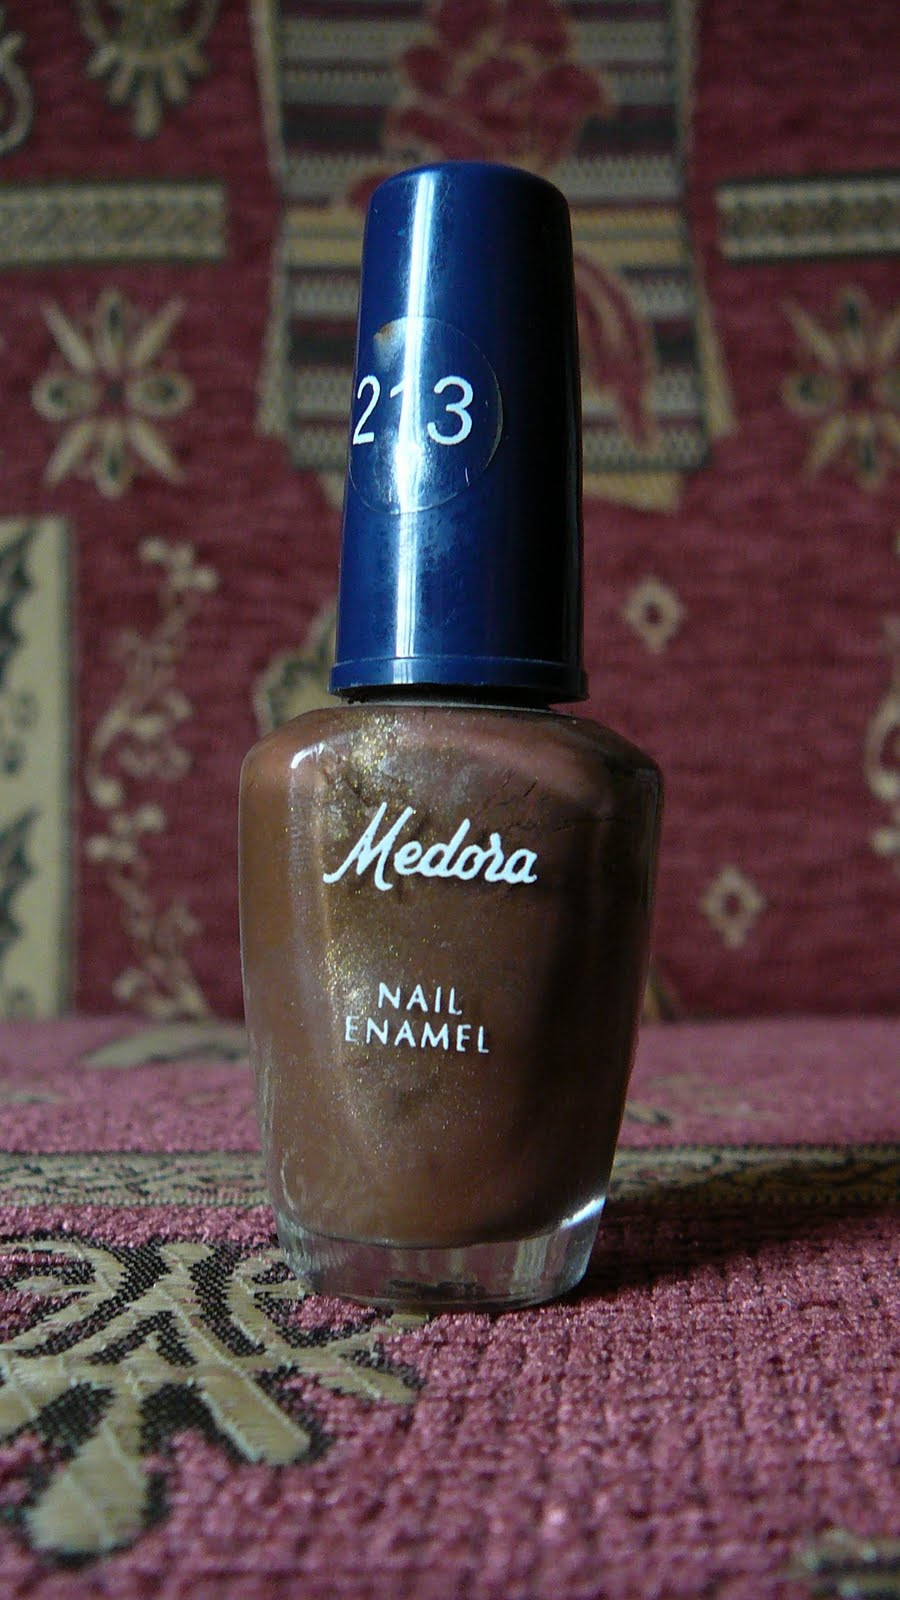 Medora Nail Color in 213 - Intensify Beauty Blog